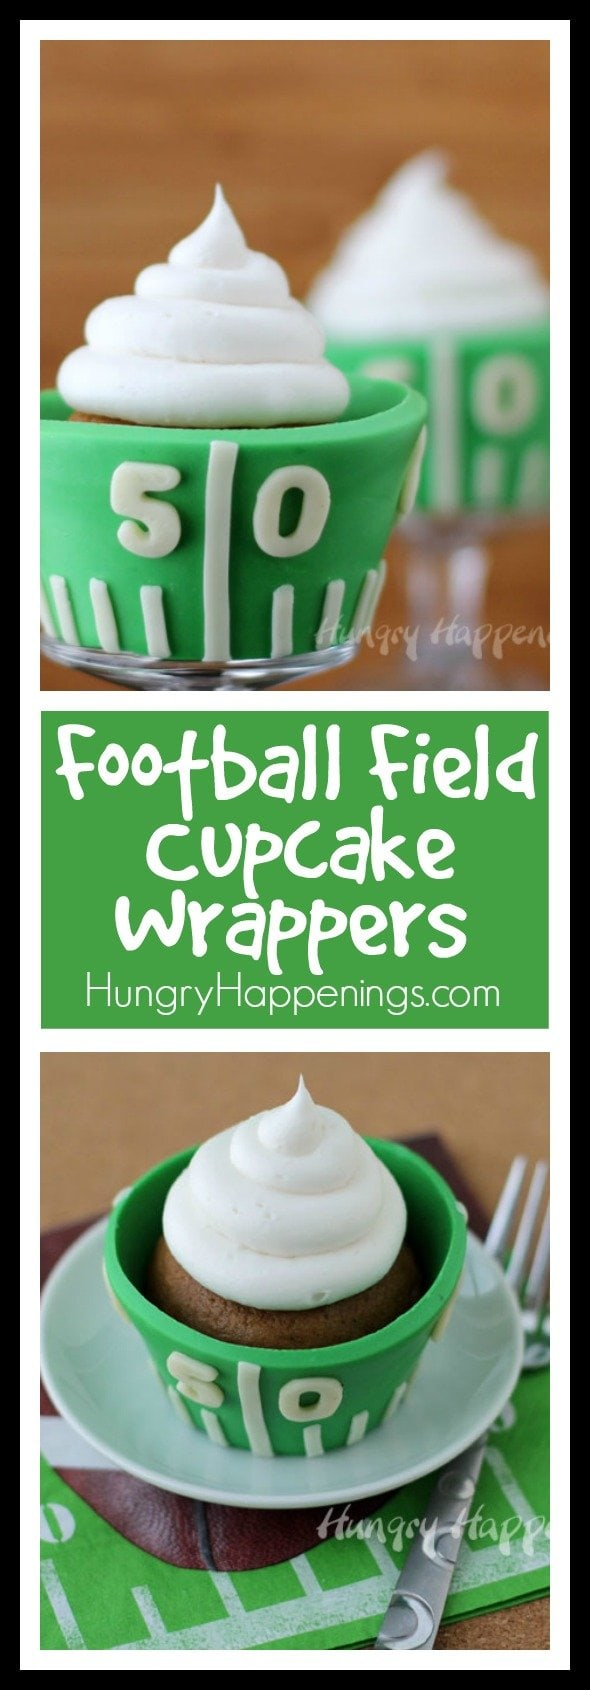 Make your football themed cupcakes completely edible by wrapping them in modeling chocolate cupcake wrappers. These Edible Football Field Cupcake Wrappers will make the perfect Super Bowl Dessert.